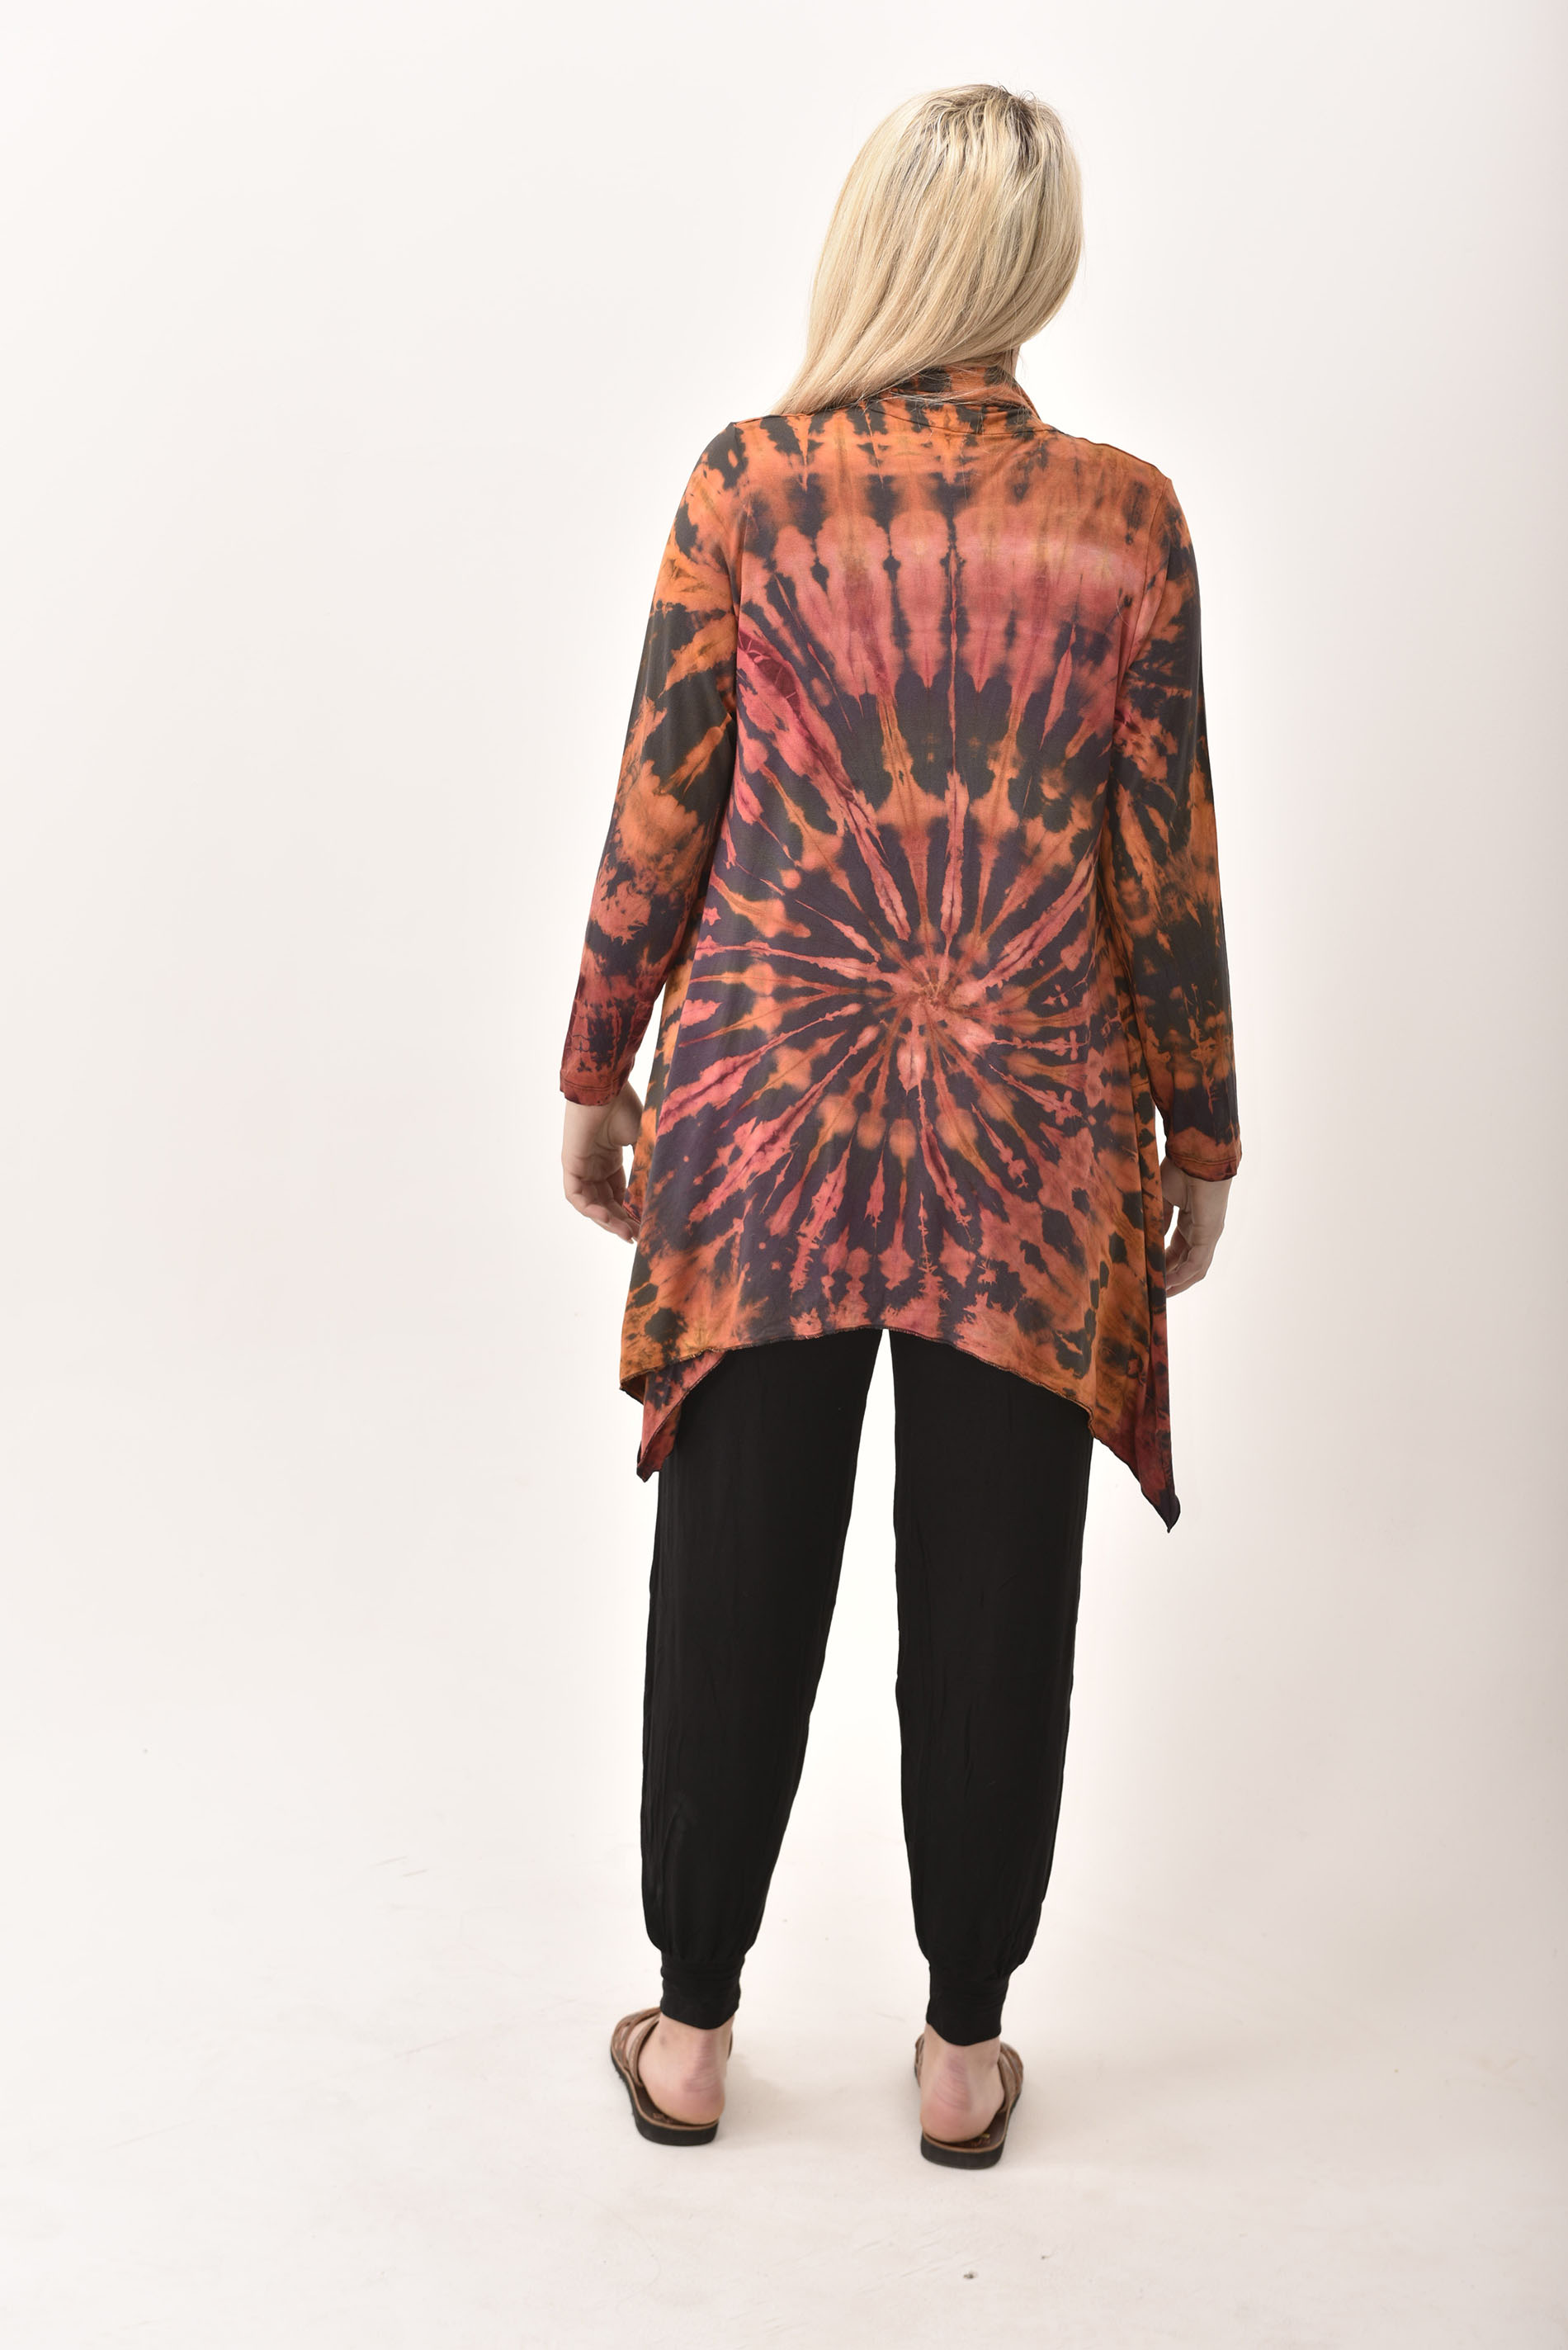 Kimono Cardigan Hand Painted Tie Dye - Purple Red Multi